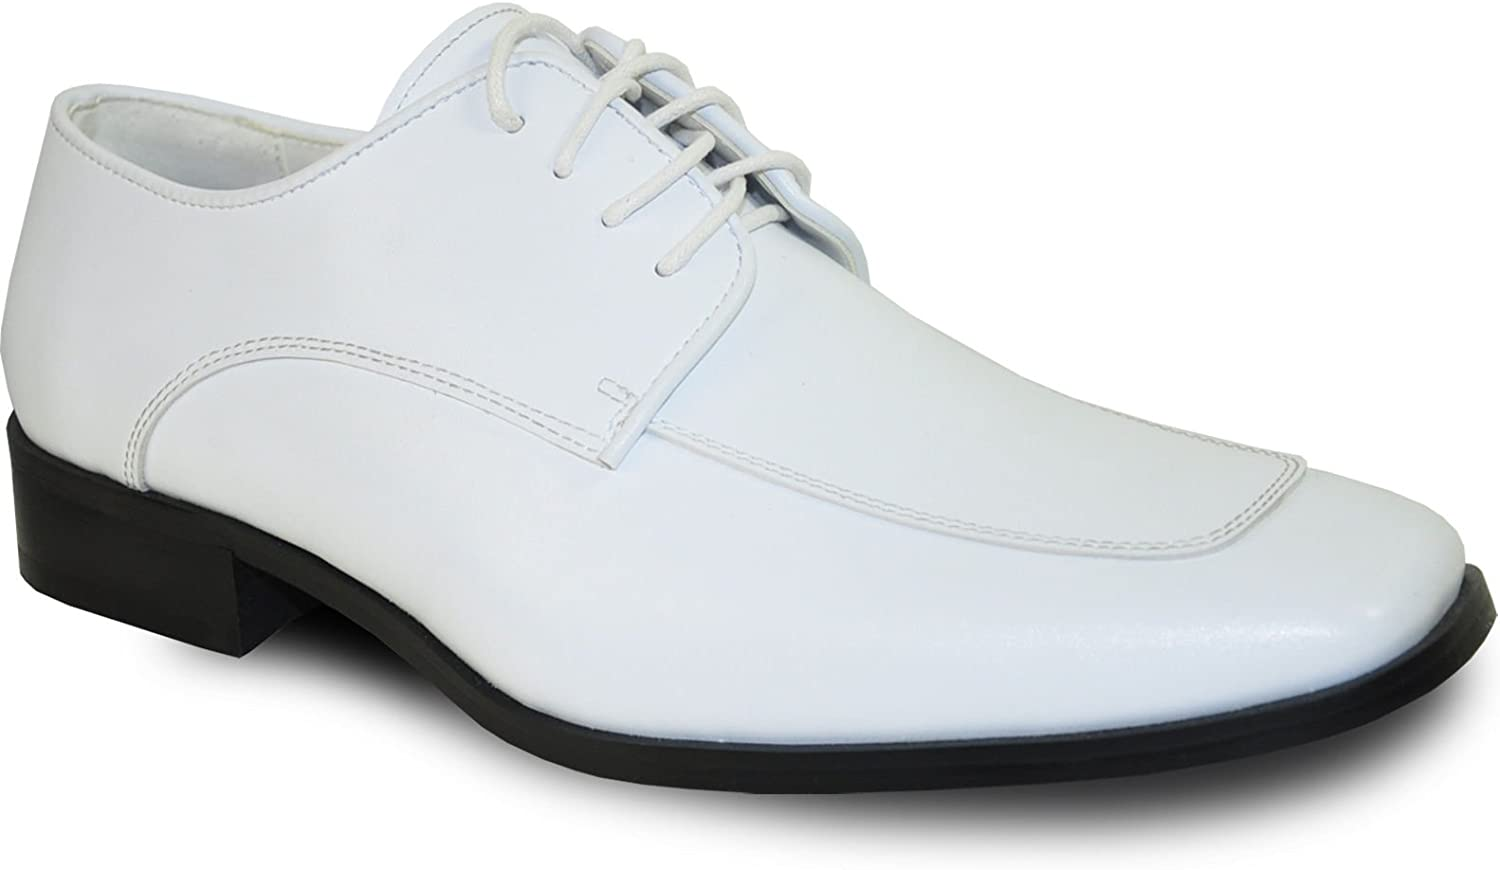 Bravo Vangelo Men's Tuxedo shoes Tux-3 Fashion Square Toe with Wrinkle Free Material White Matte